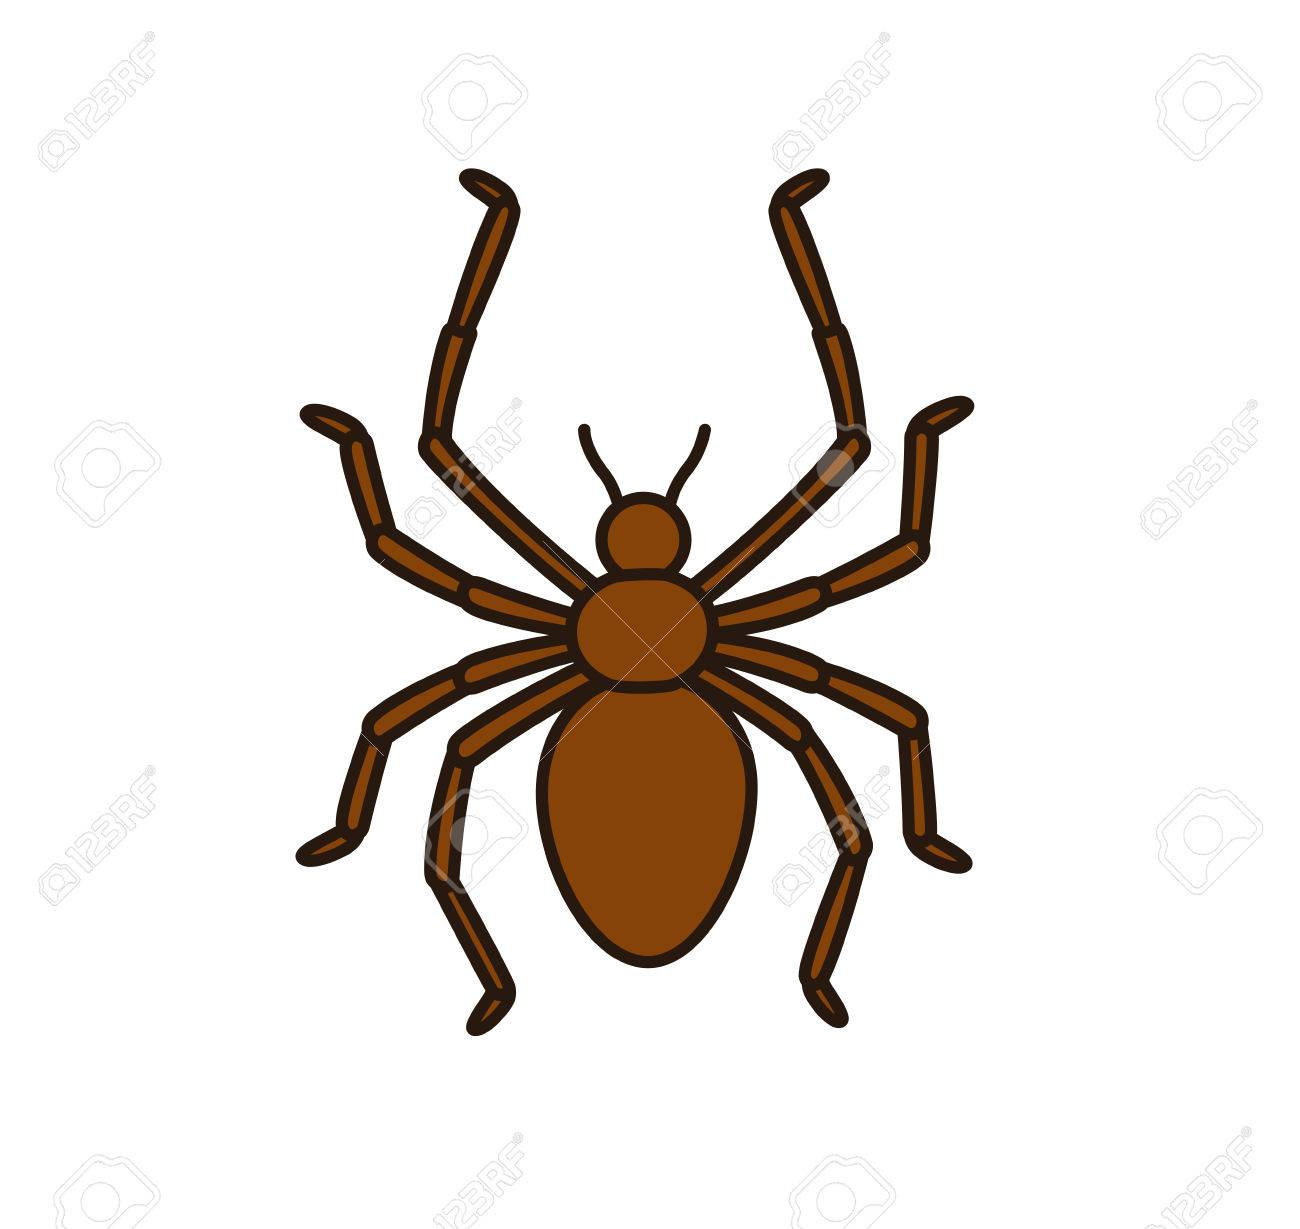 retro spider clipart royalty free cliparts vectors and stock rh 123rf com spider clipart images spider clipart black and white